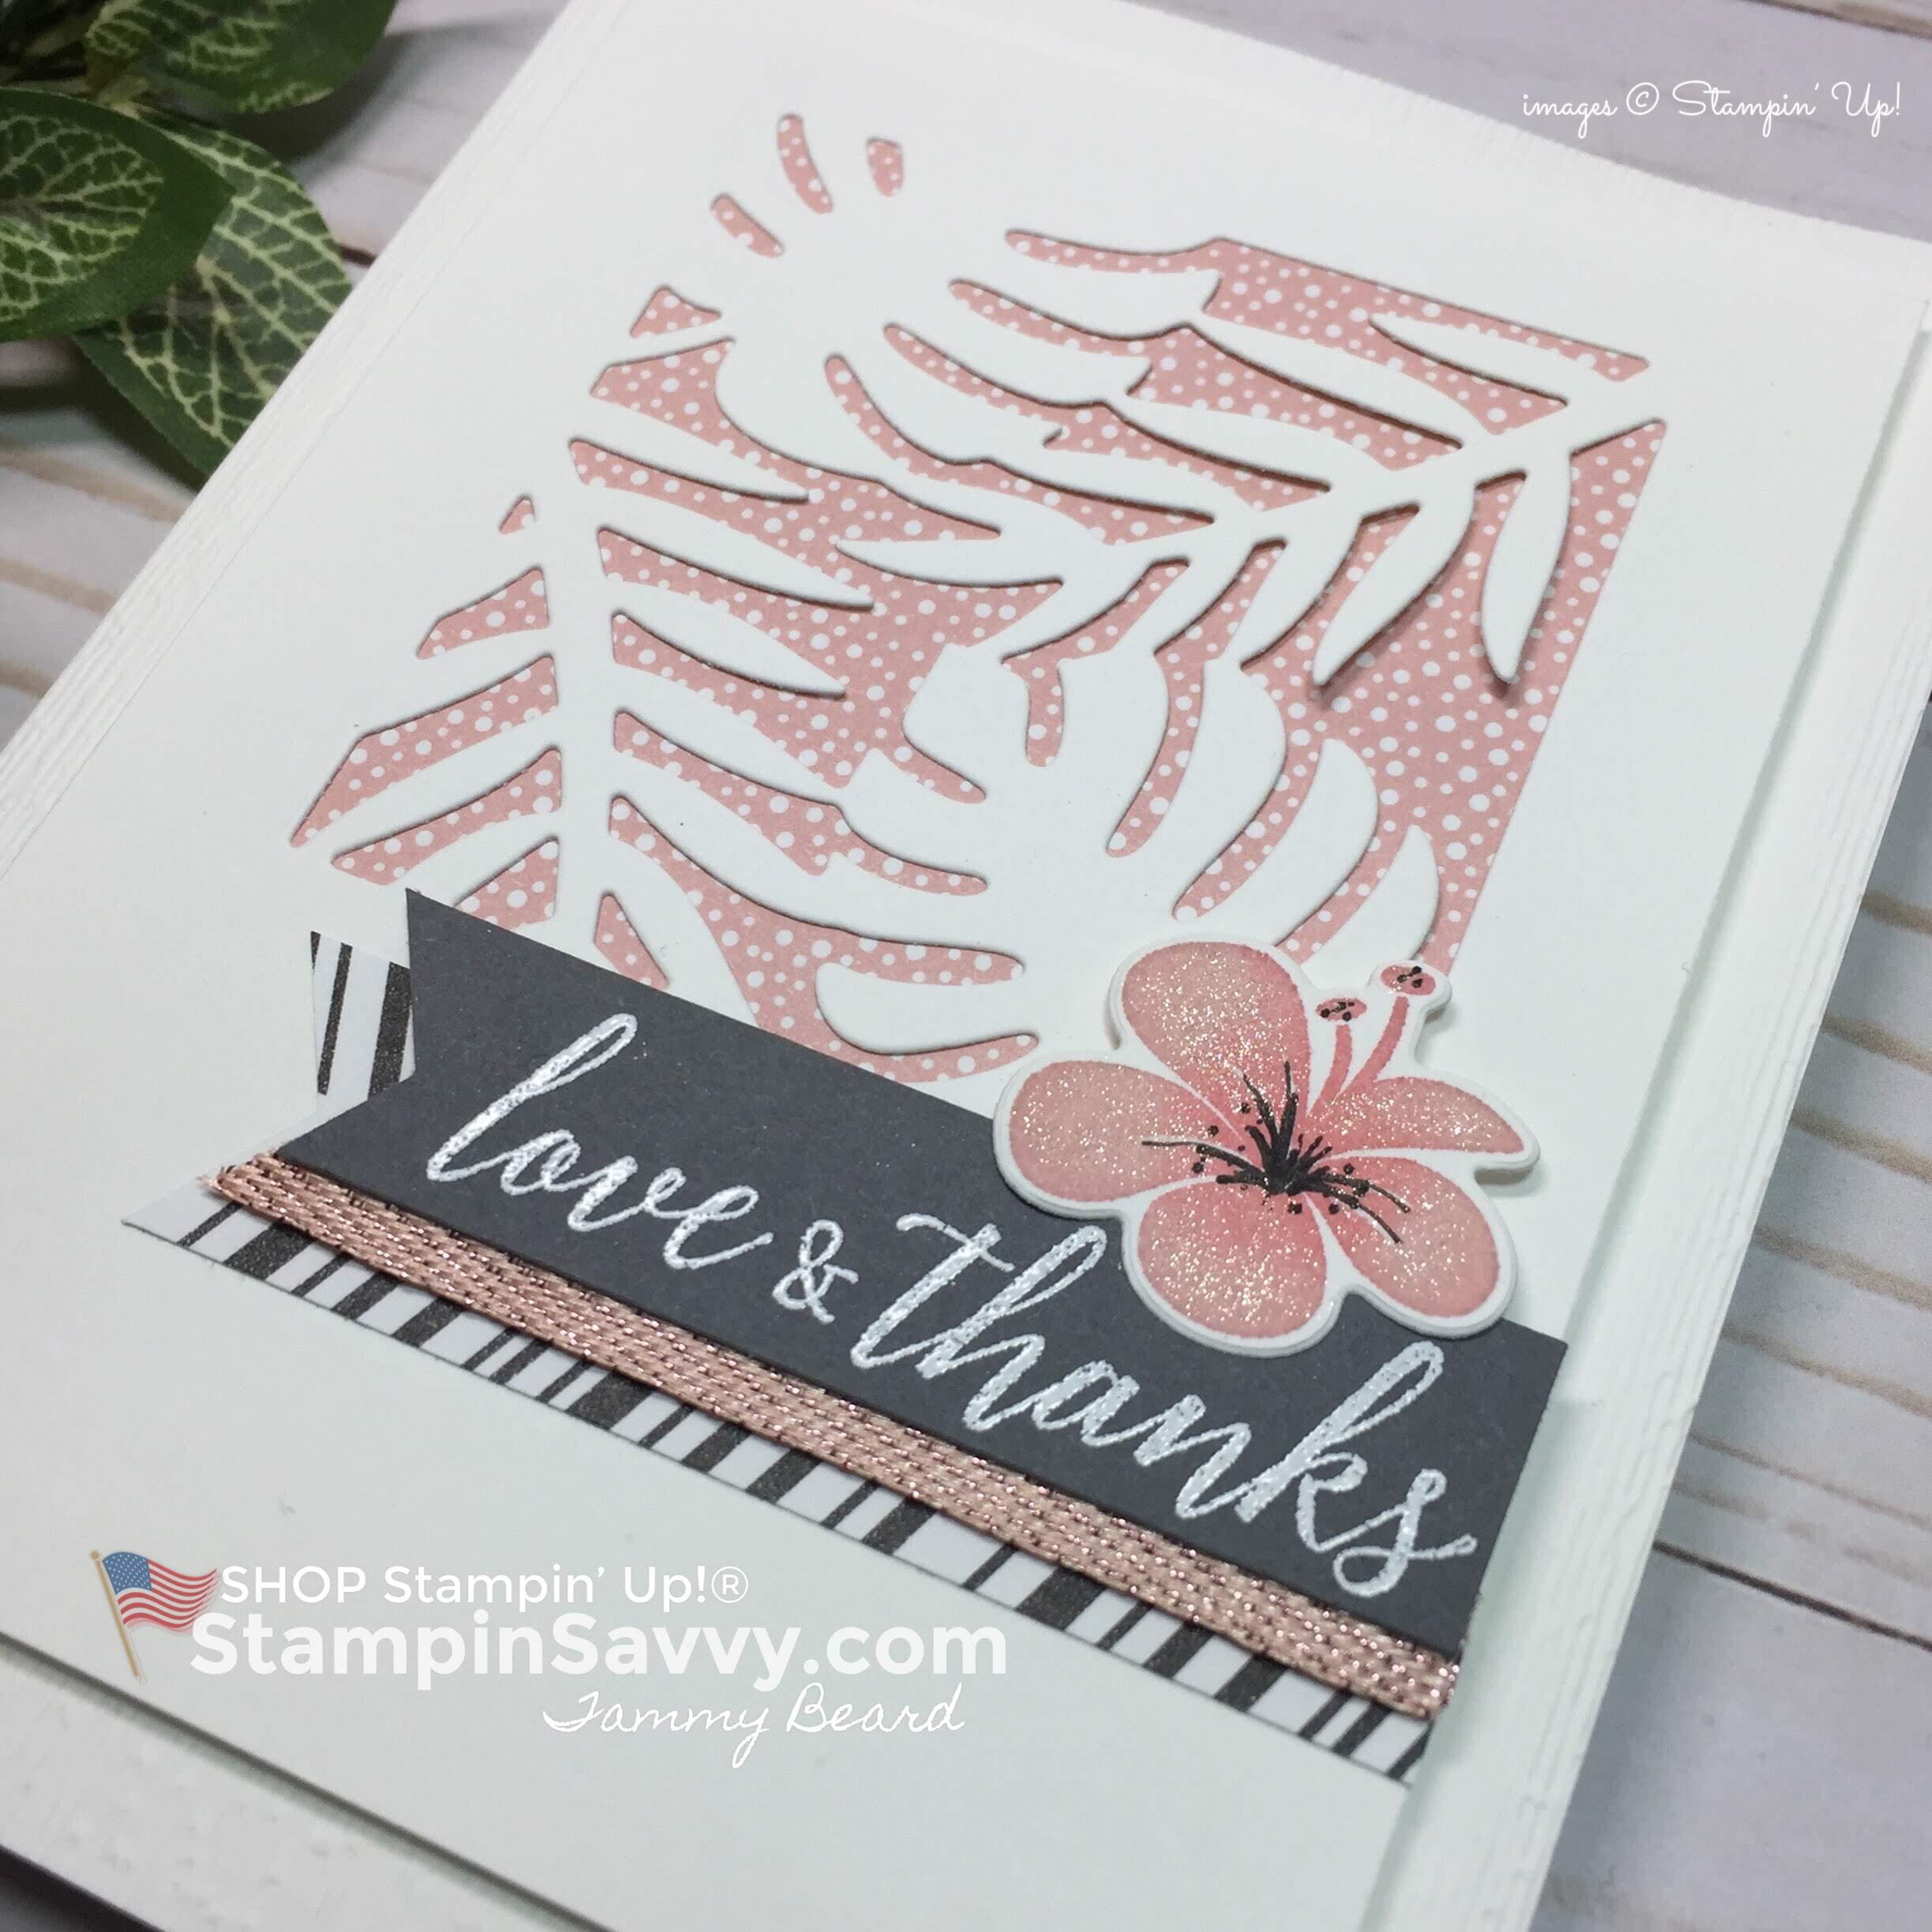 tropical chic bundle, card ideas, stampin up, stampinup, stampin savvy, stampinsavvy, closeup, tammy beard